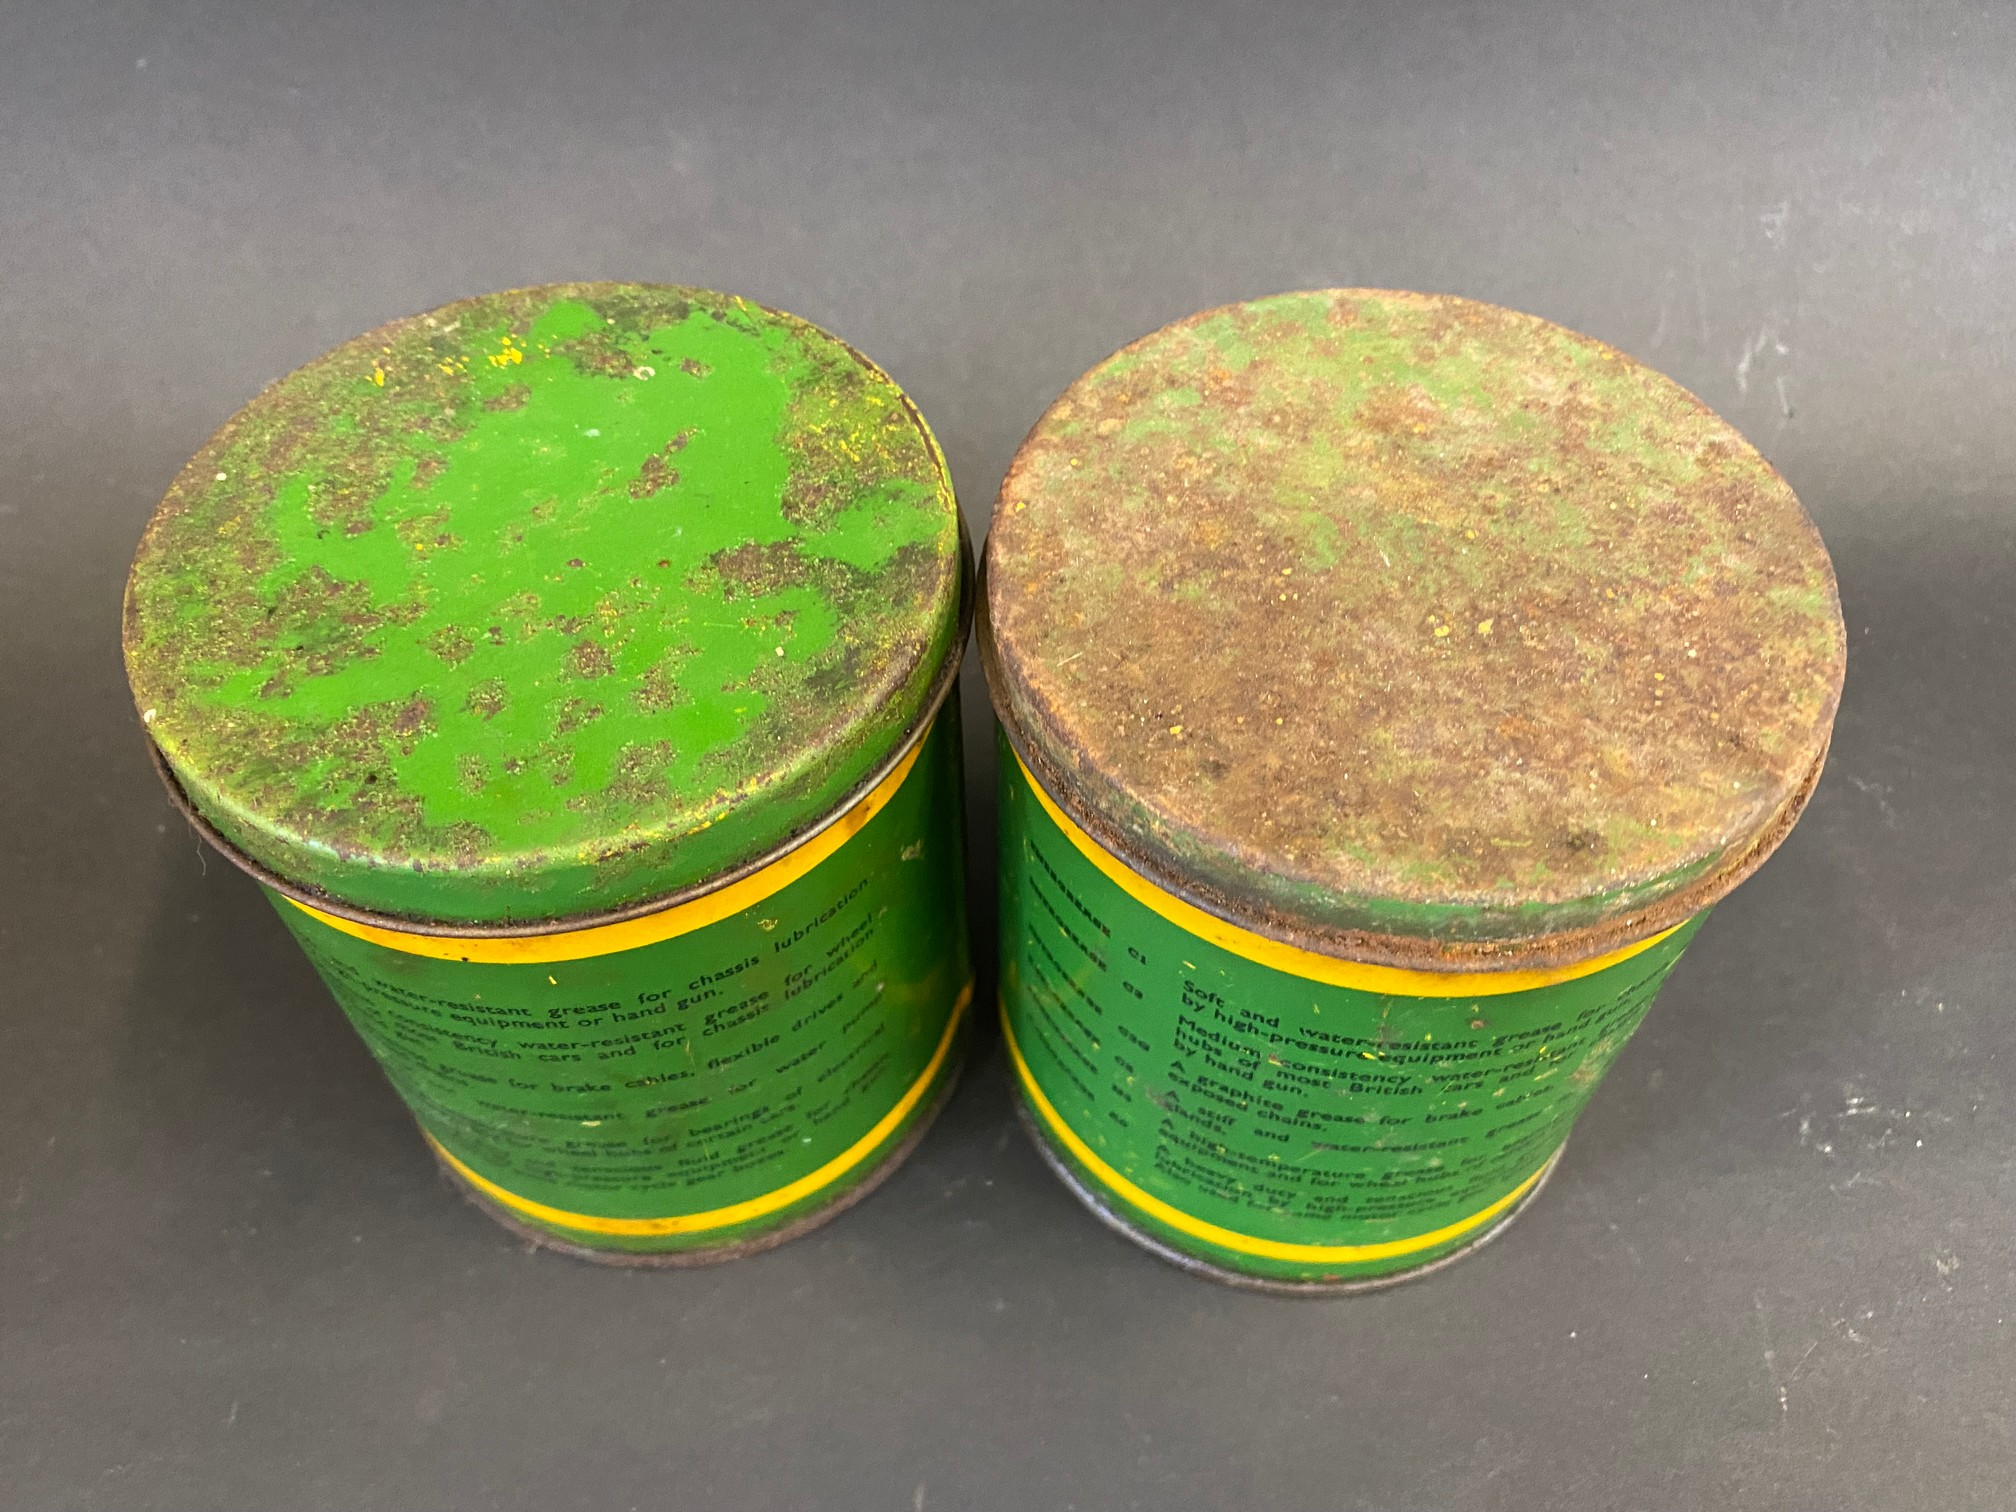 Two BP Energrease tins. - Image 3 of 4